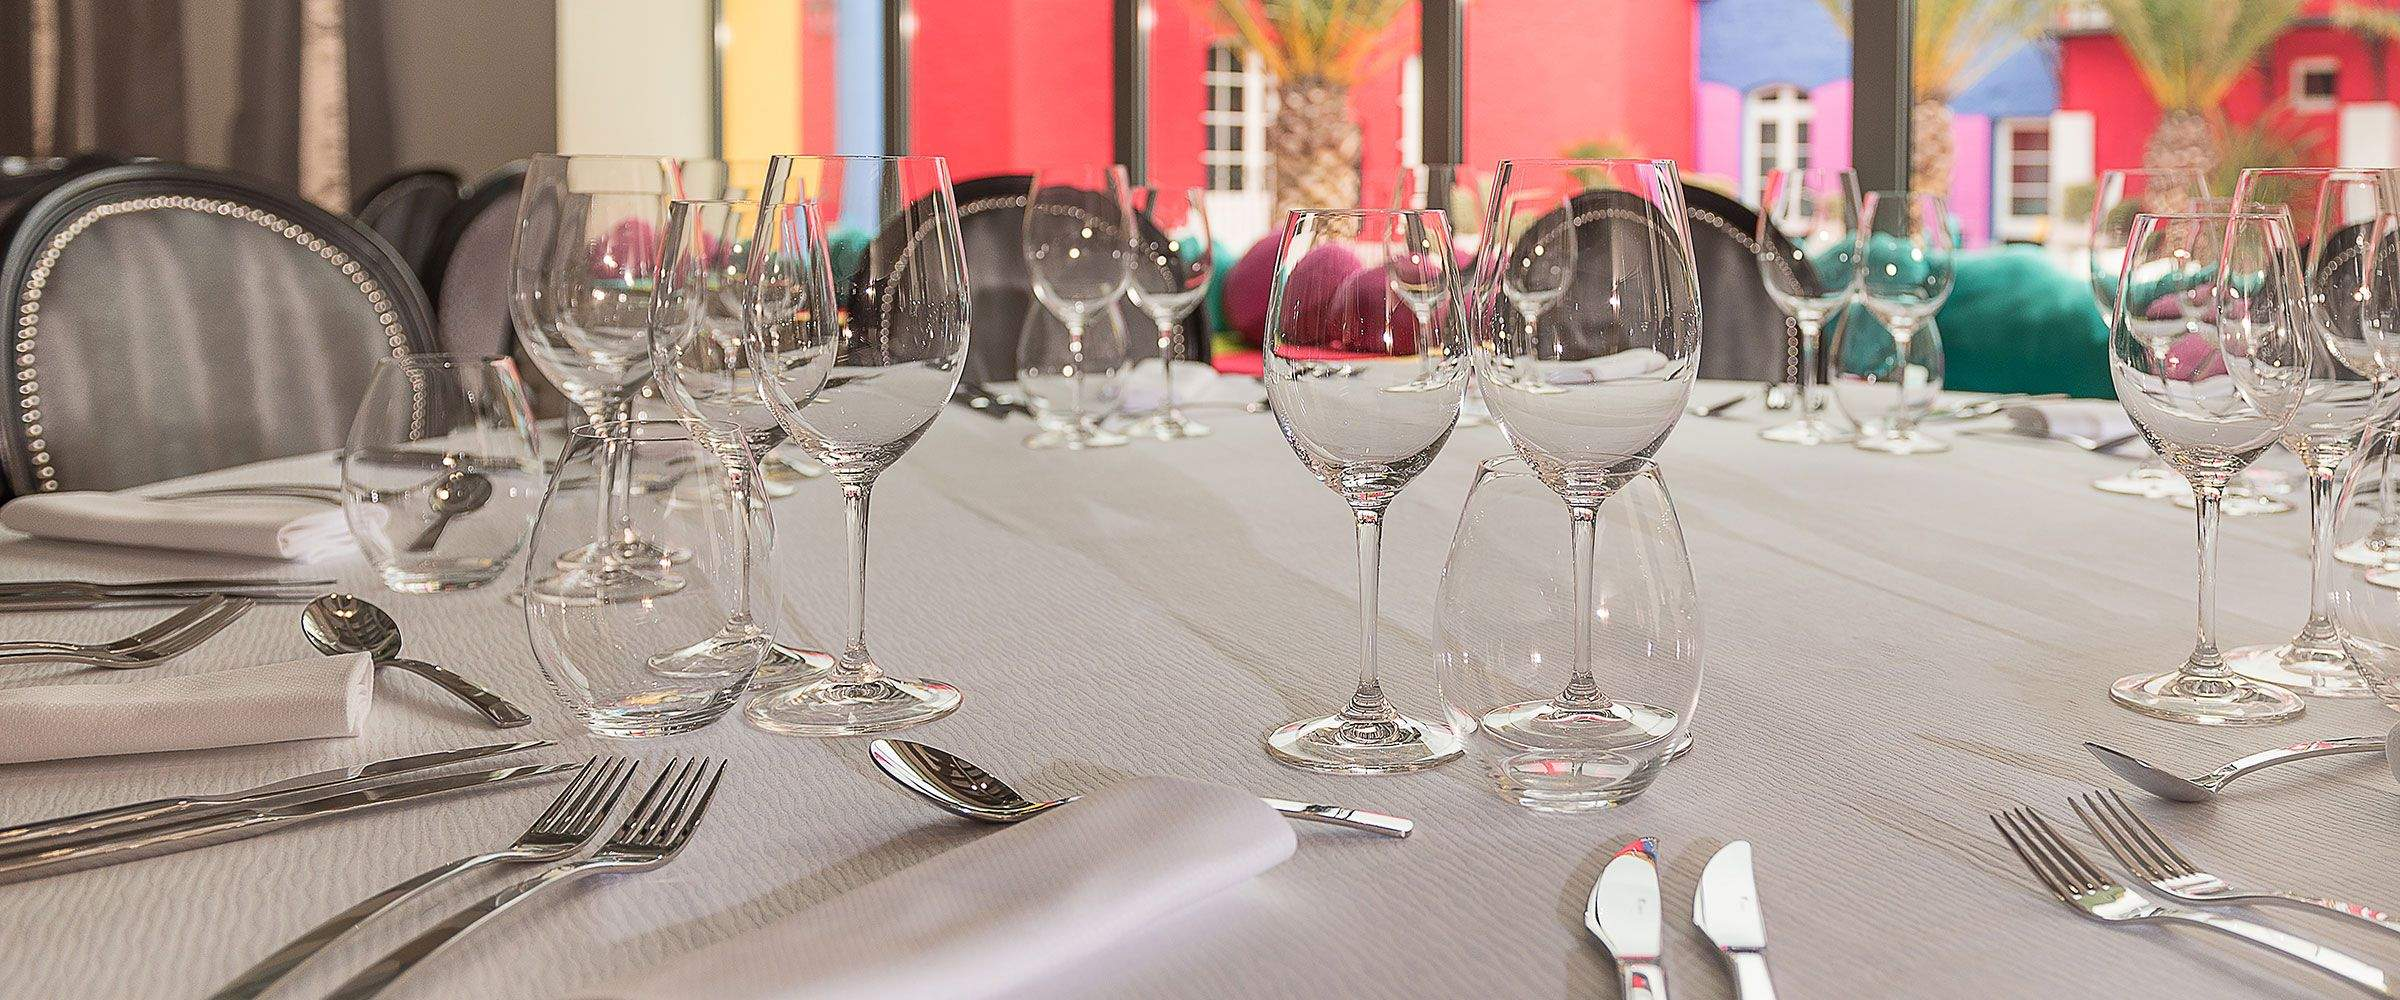 Your private functions at the Stelsia